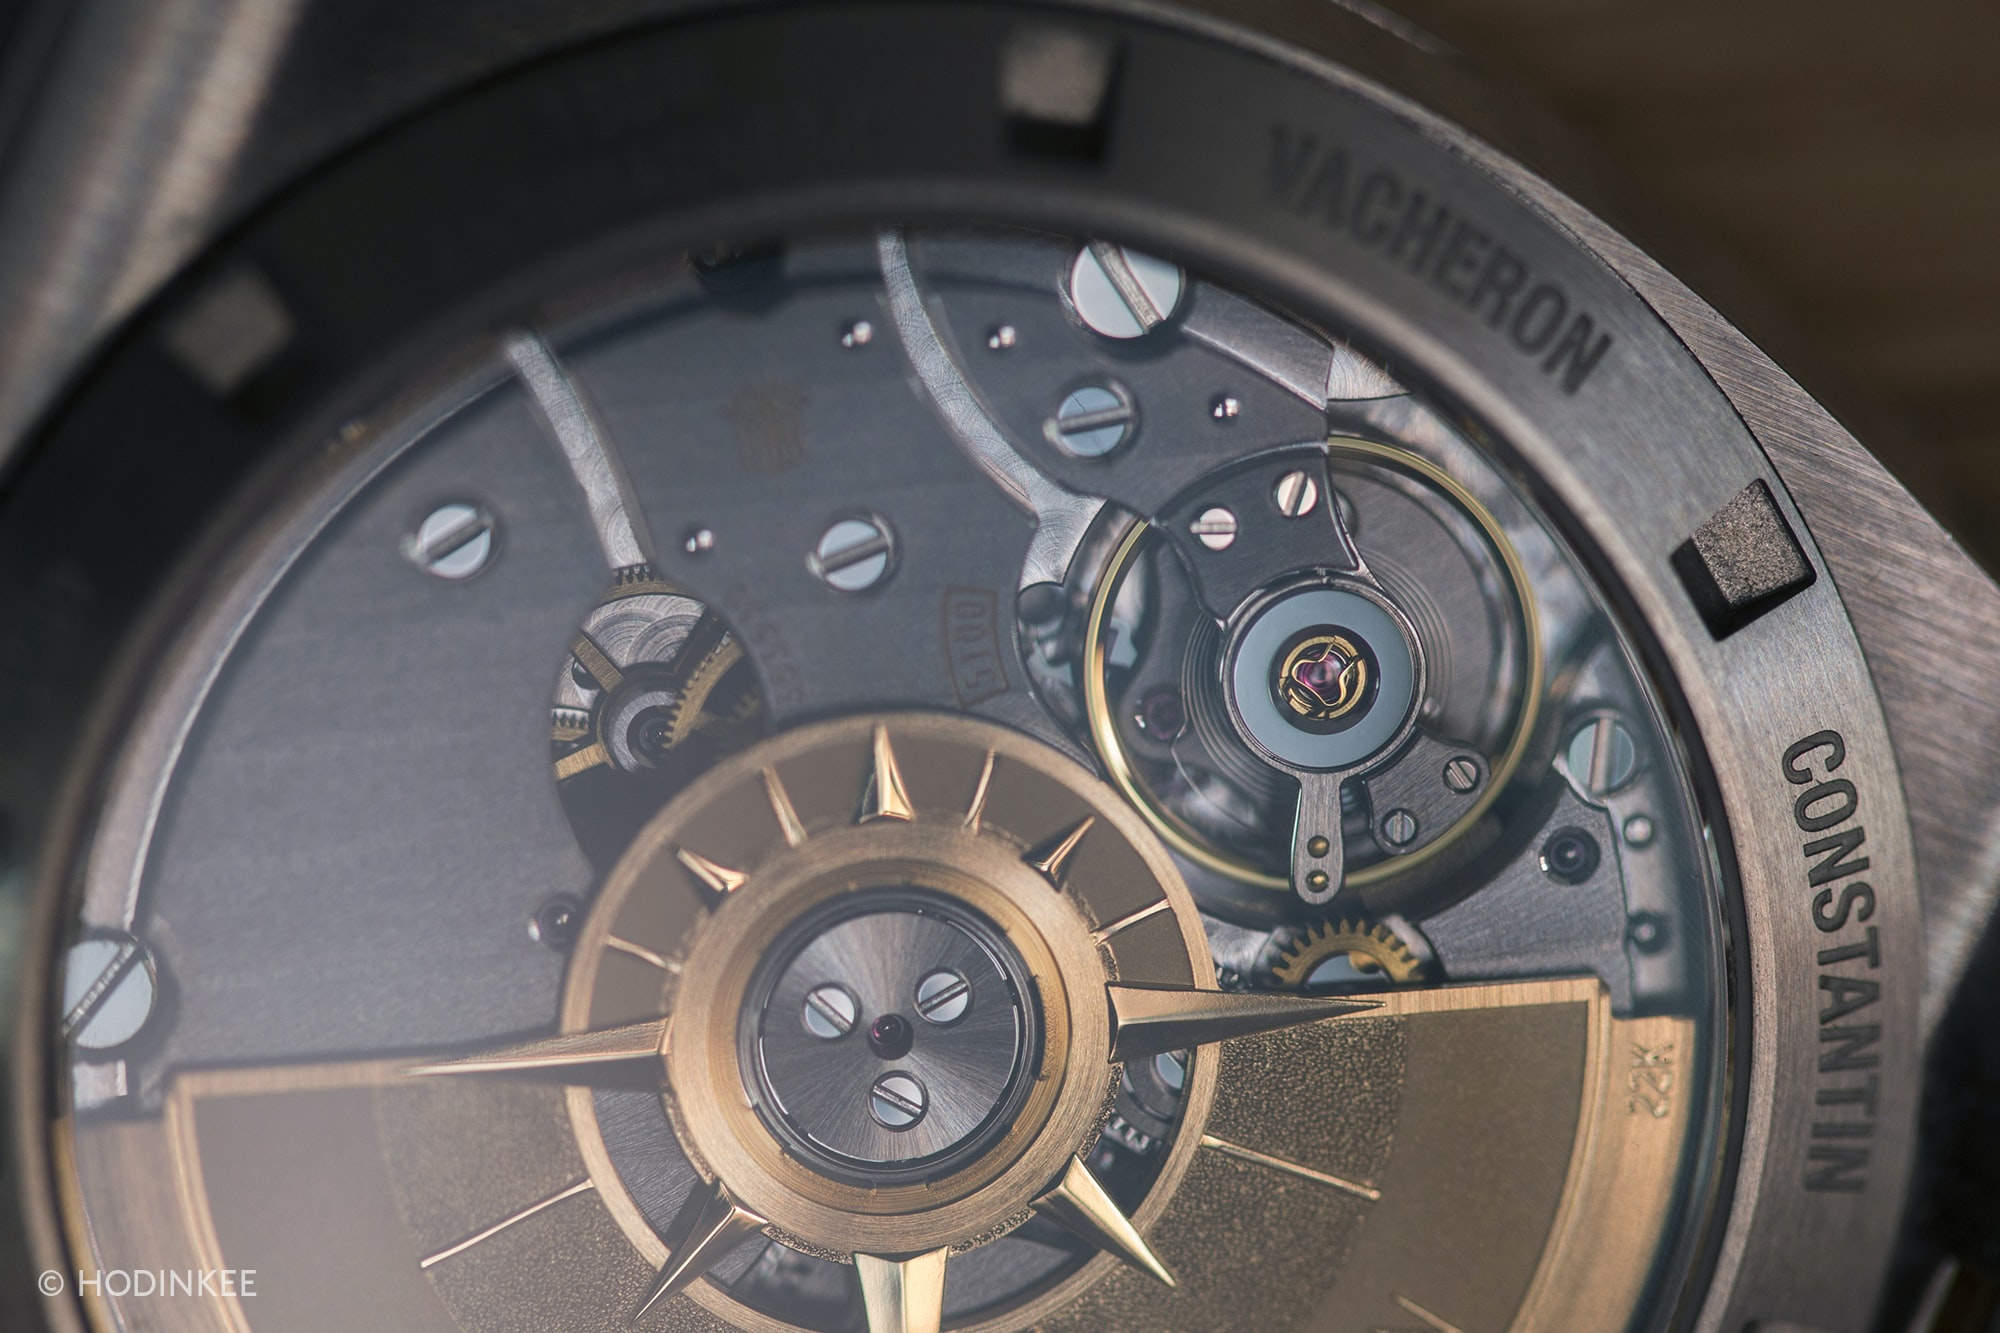 Three On Three: Comparing The Vacheron Constantin Overseas, The Piaget Polo S, And The Audemars Piguet Royal Oak 15400 Three On Three: Comparing The Vacheron Constantin Overseas, The Piaget Polo S, And The Audemars Piguet Royal Oak 15400 20015895 copy